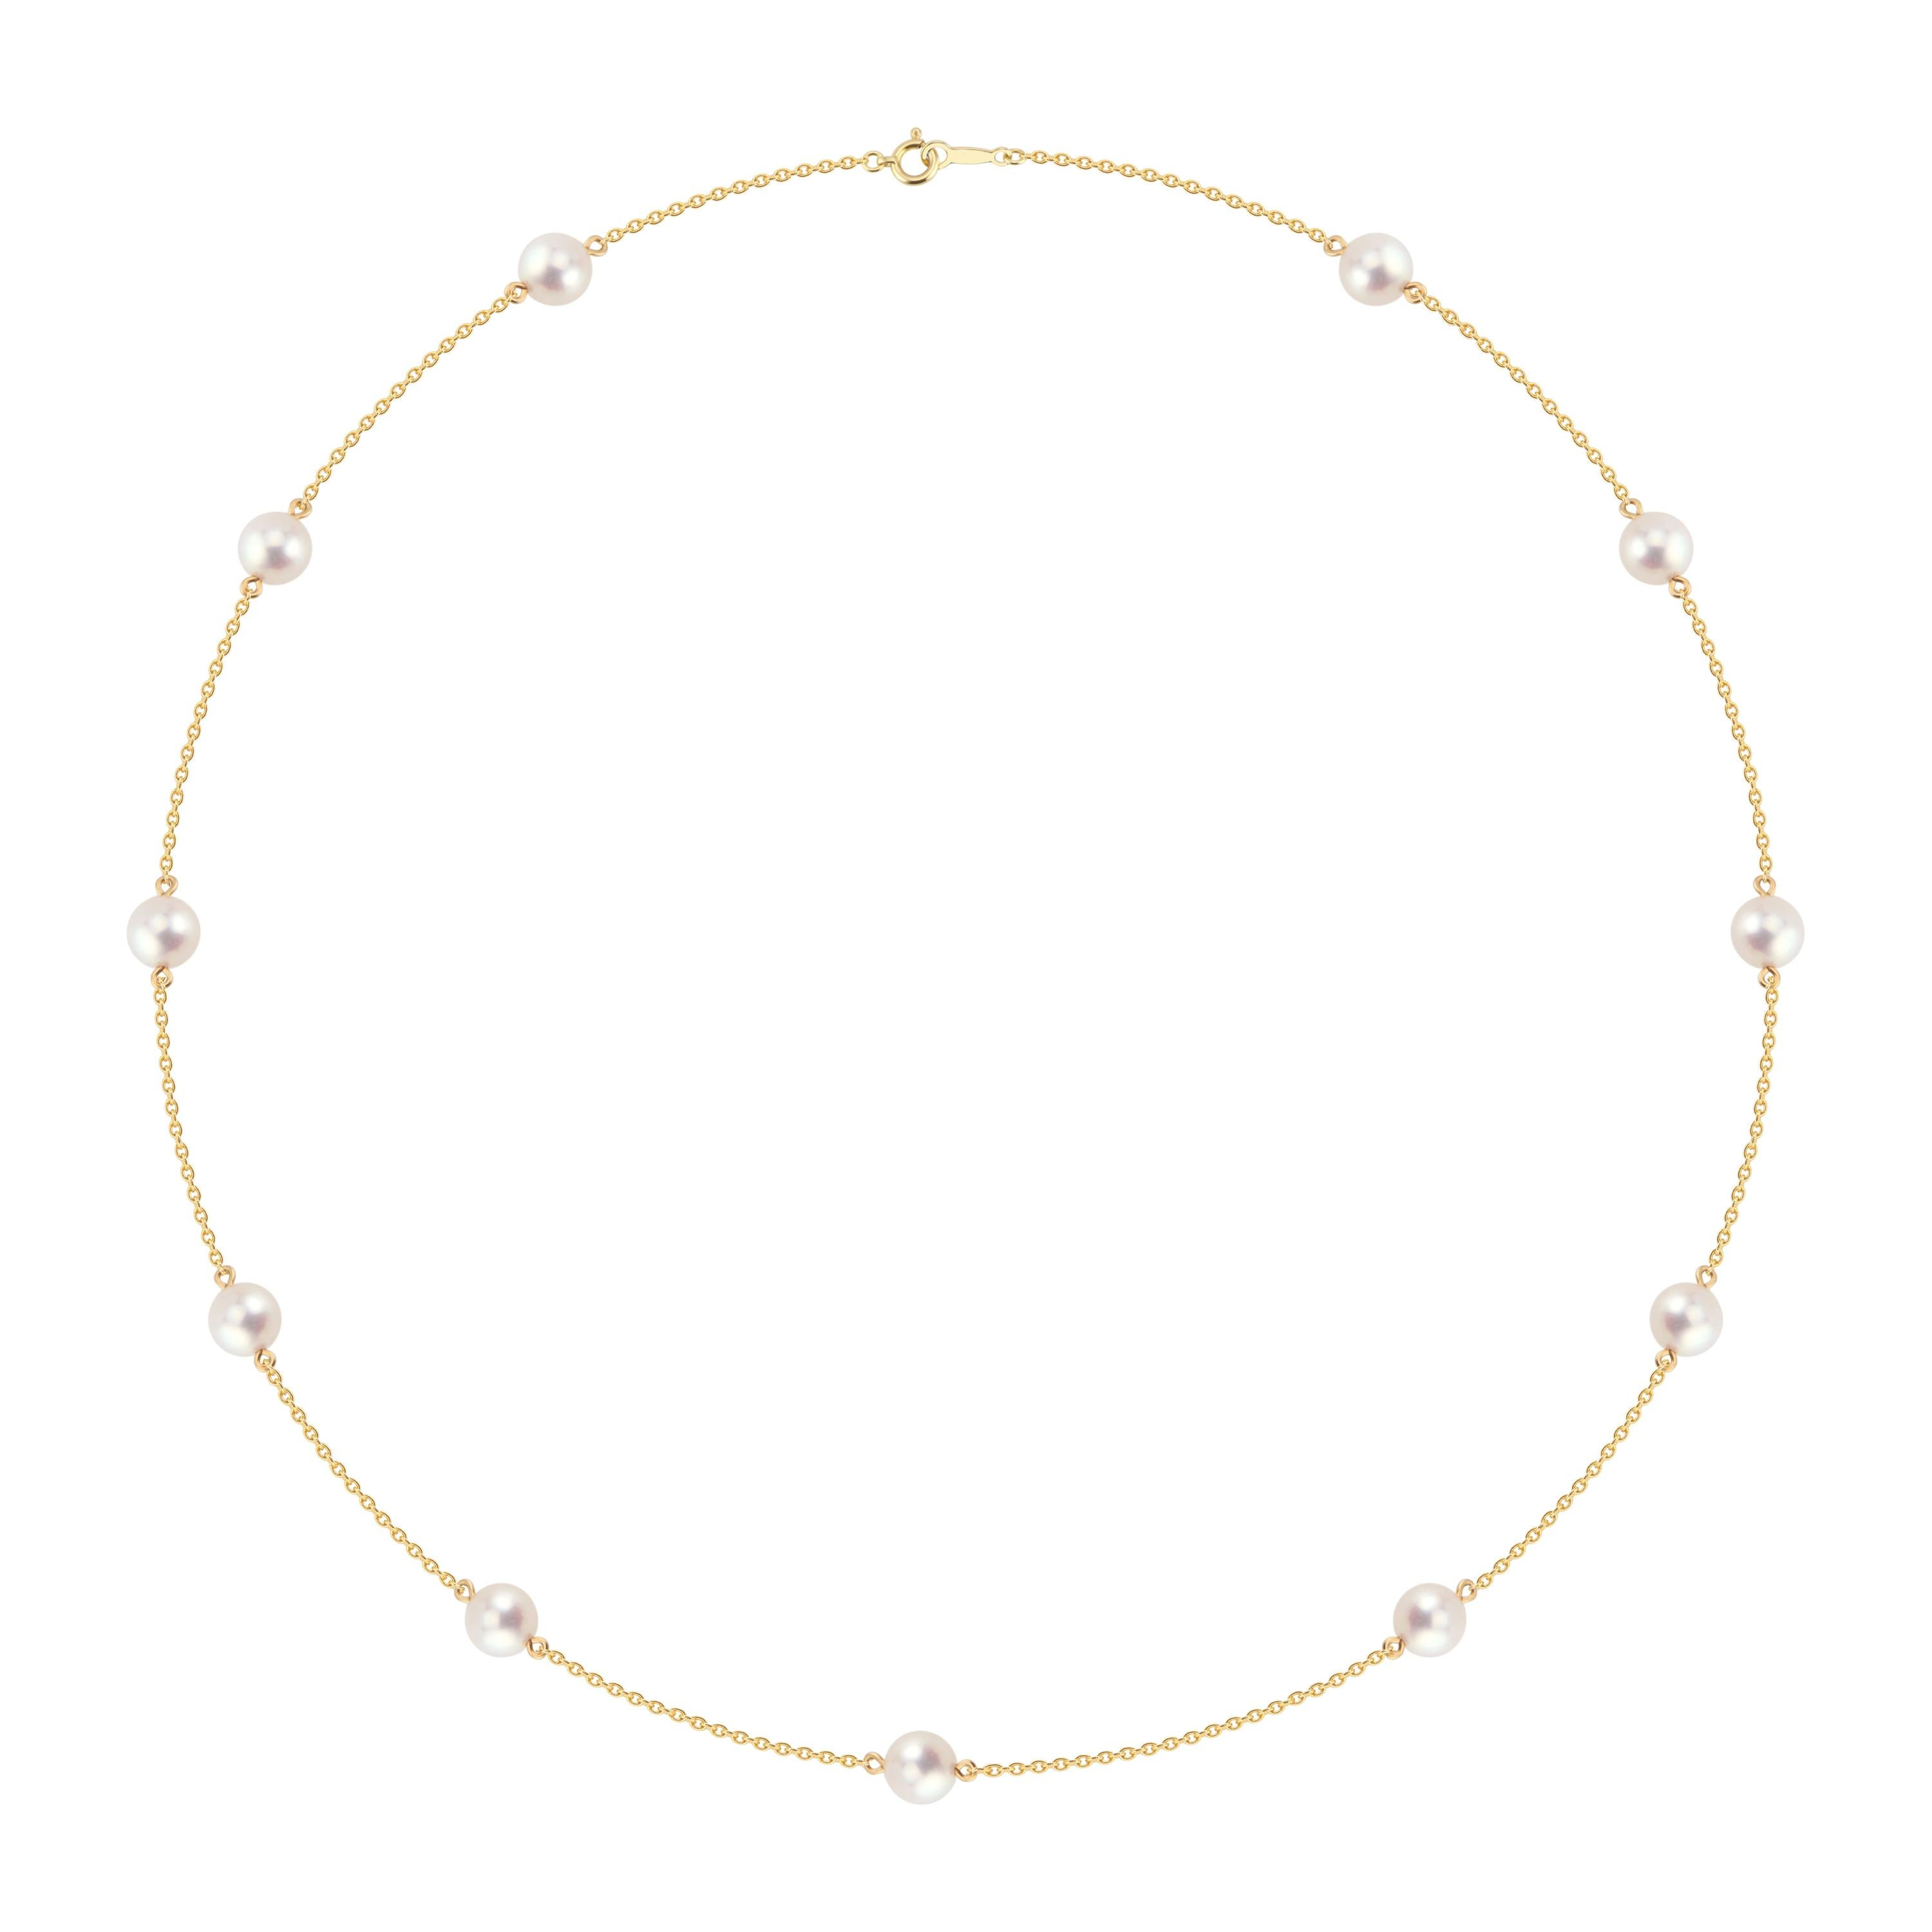 Mikimoto Pearl Station Yellow Gold by the Yard Necklace